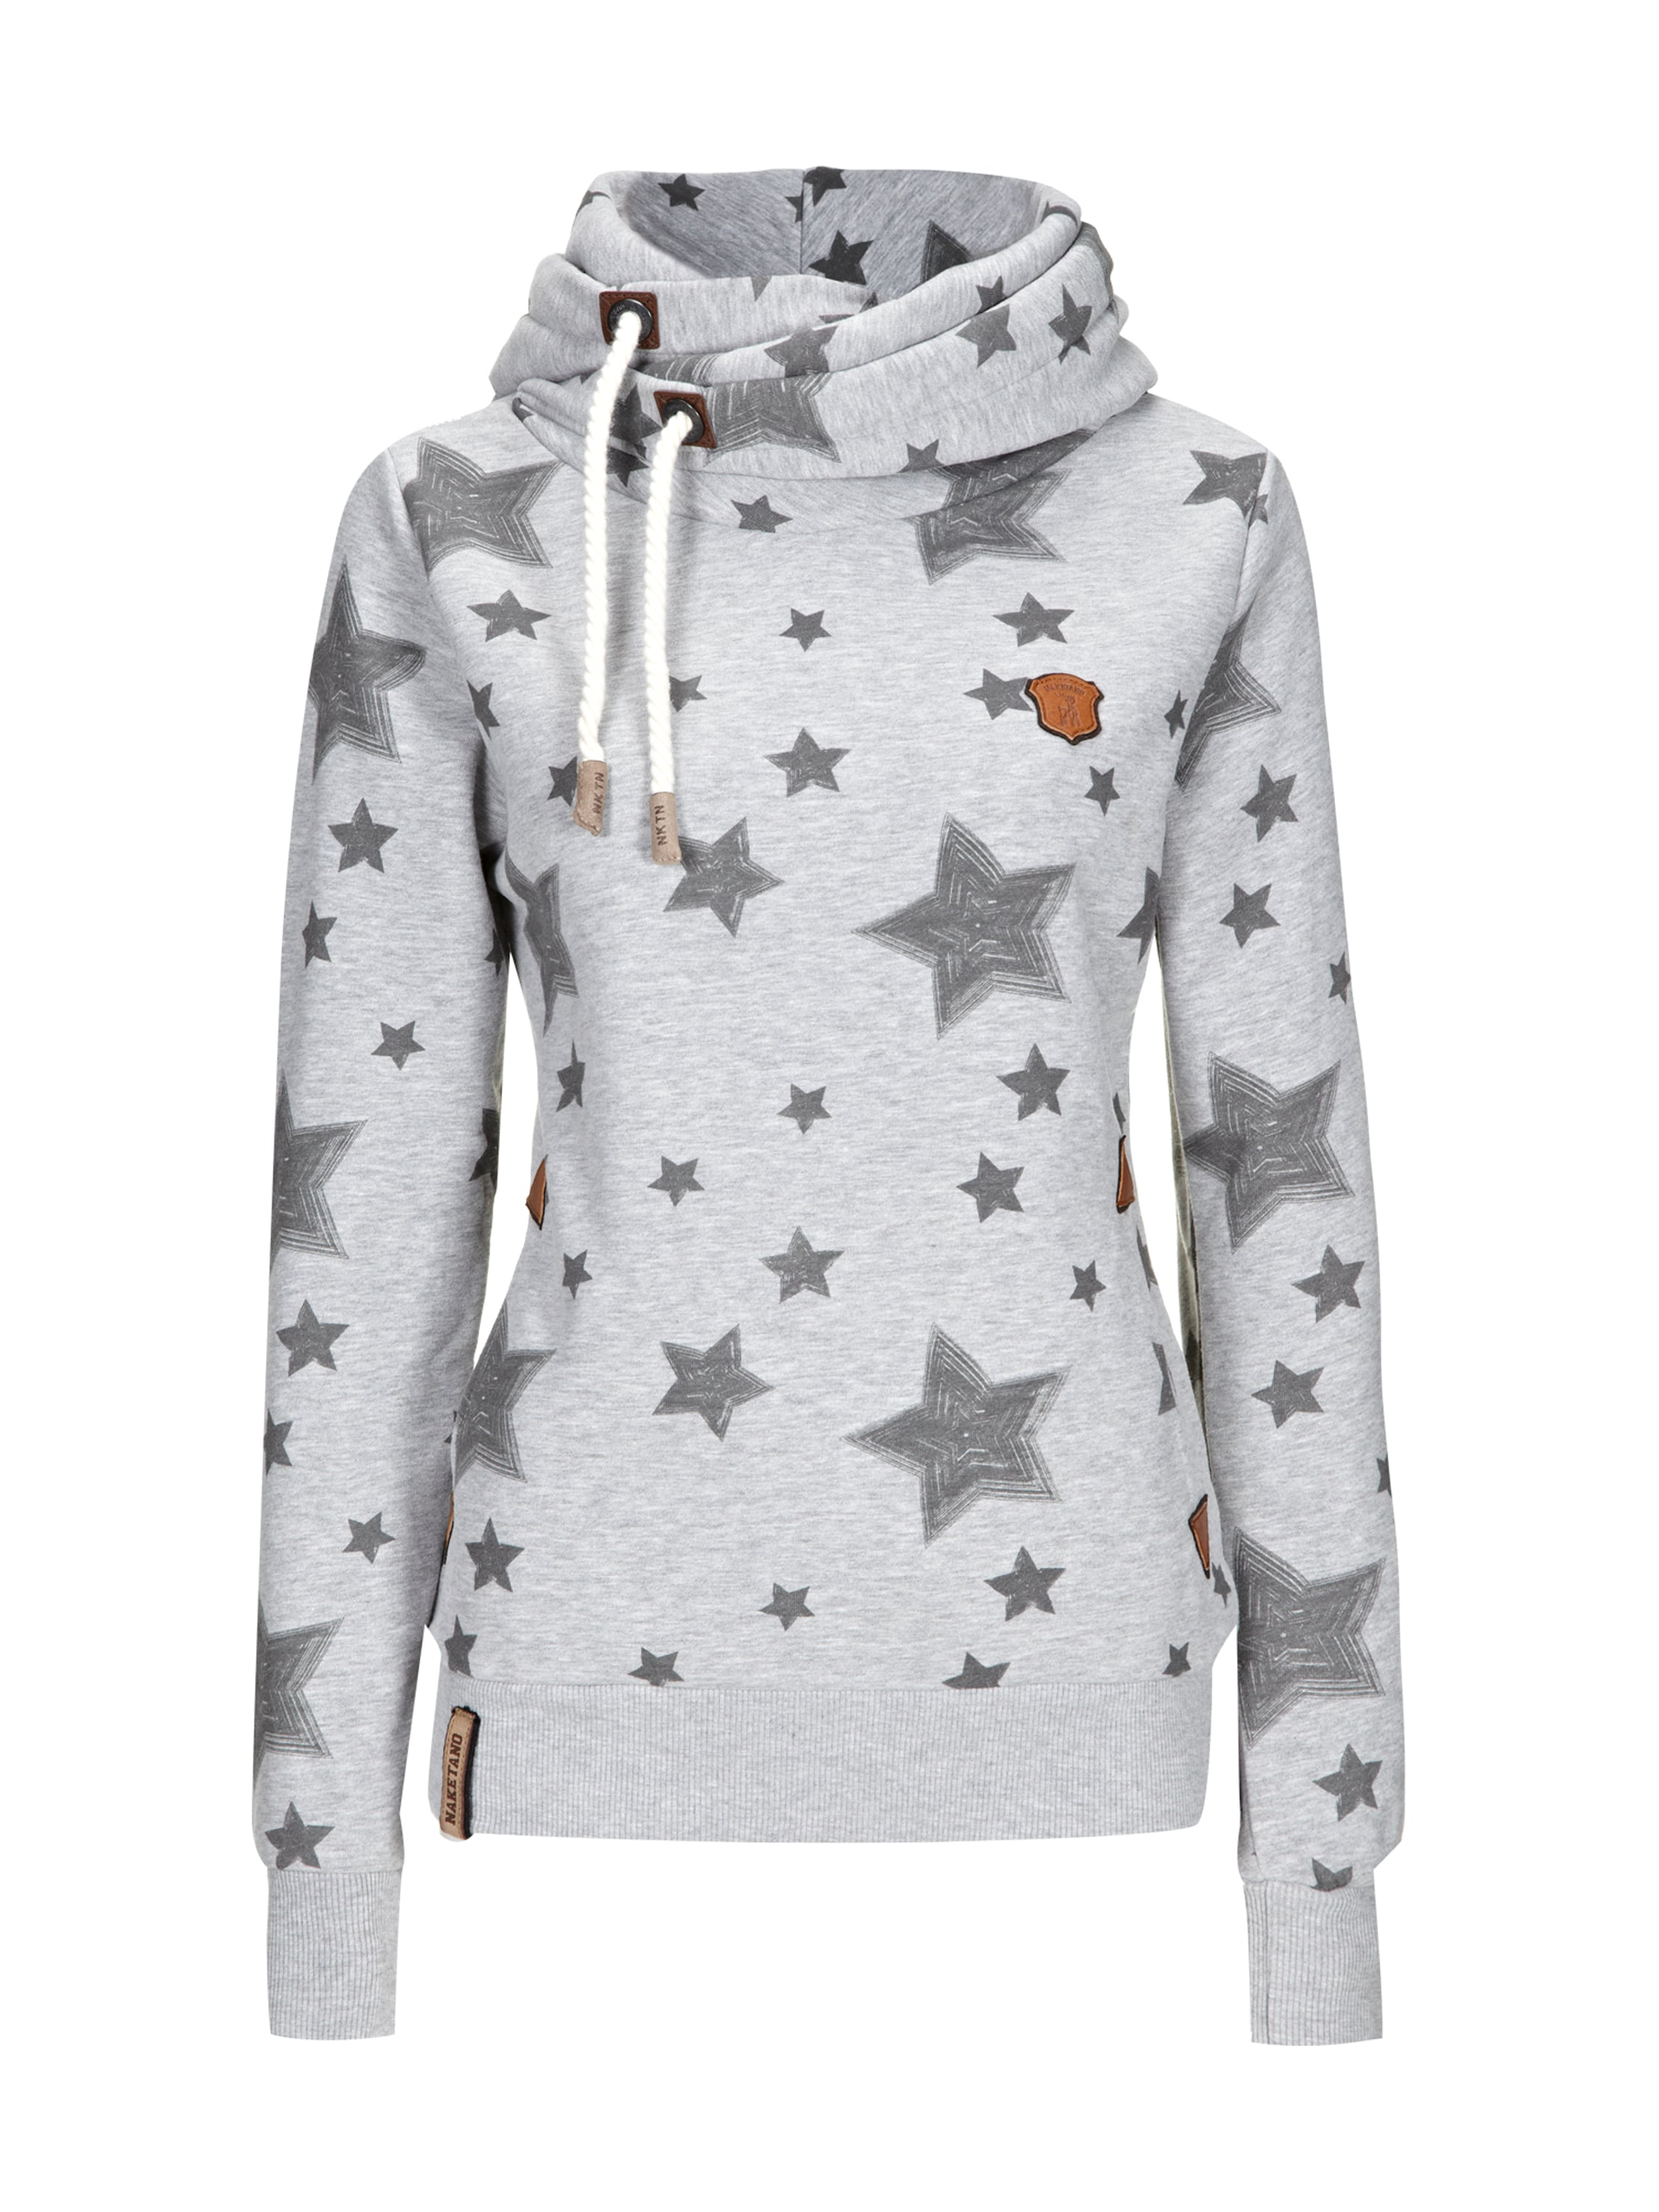 naketano hoodie mit sterne print in grau schwarz online kaufen 9035194 fashion id online shop. Black Bedroom Furniture Sets. Home Design Ideas